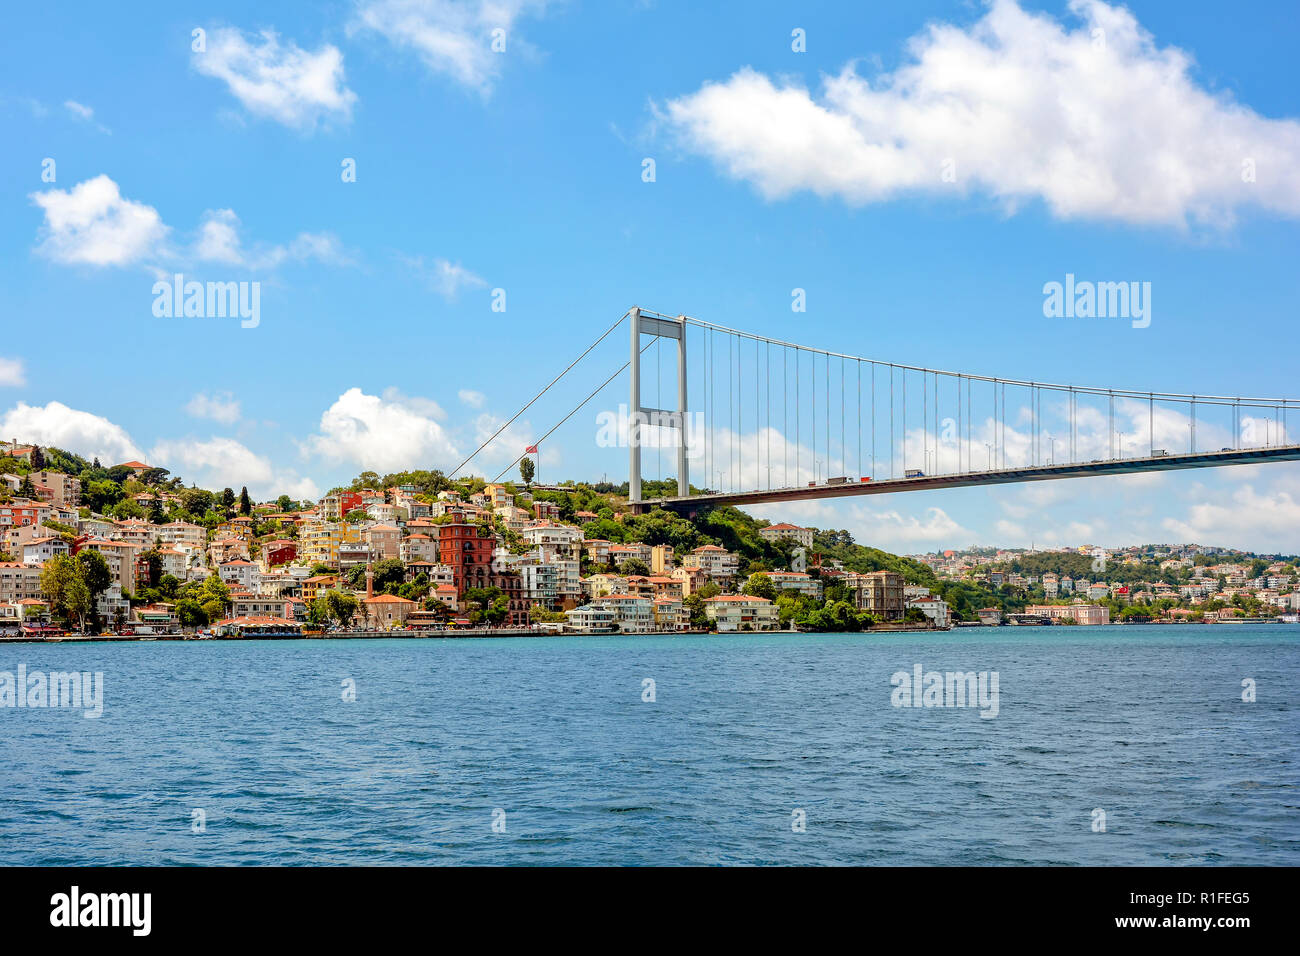 View of the historic city of Istanbul and its buildings on the banks of the Bosphorus - Stock Image